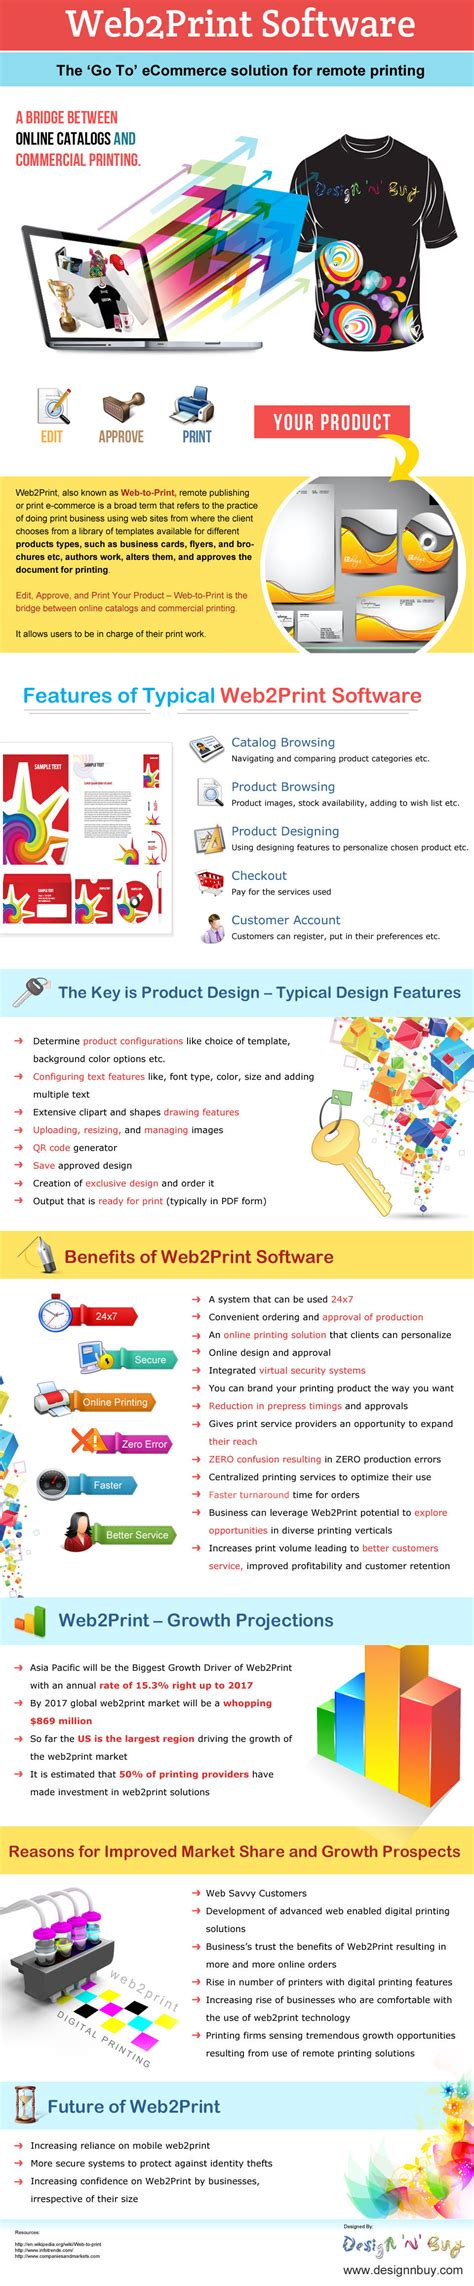 Web To Print Software  The 'go To'ecommerce Solution For. Jimi Hendrix Drug Addiction Site Hosted By. Patent Attorney Pittsburgh Ways To Video Chat. X Ray Technician Education Newton Ma Dentist. Sample Html Email Templates English Ap Exam. Online Courses For Electrical Engineering. Wellcore Medical Alert Ken Nugent Columbus Ga. Virtual Machine In The Cloud. Sports Administration Graduate Programs